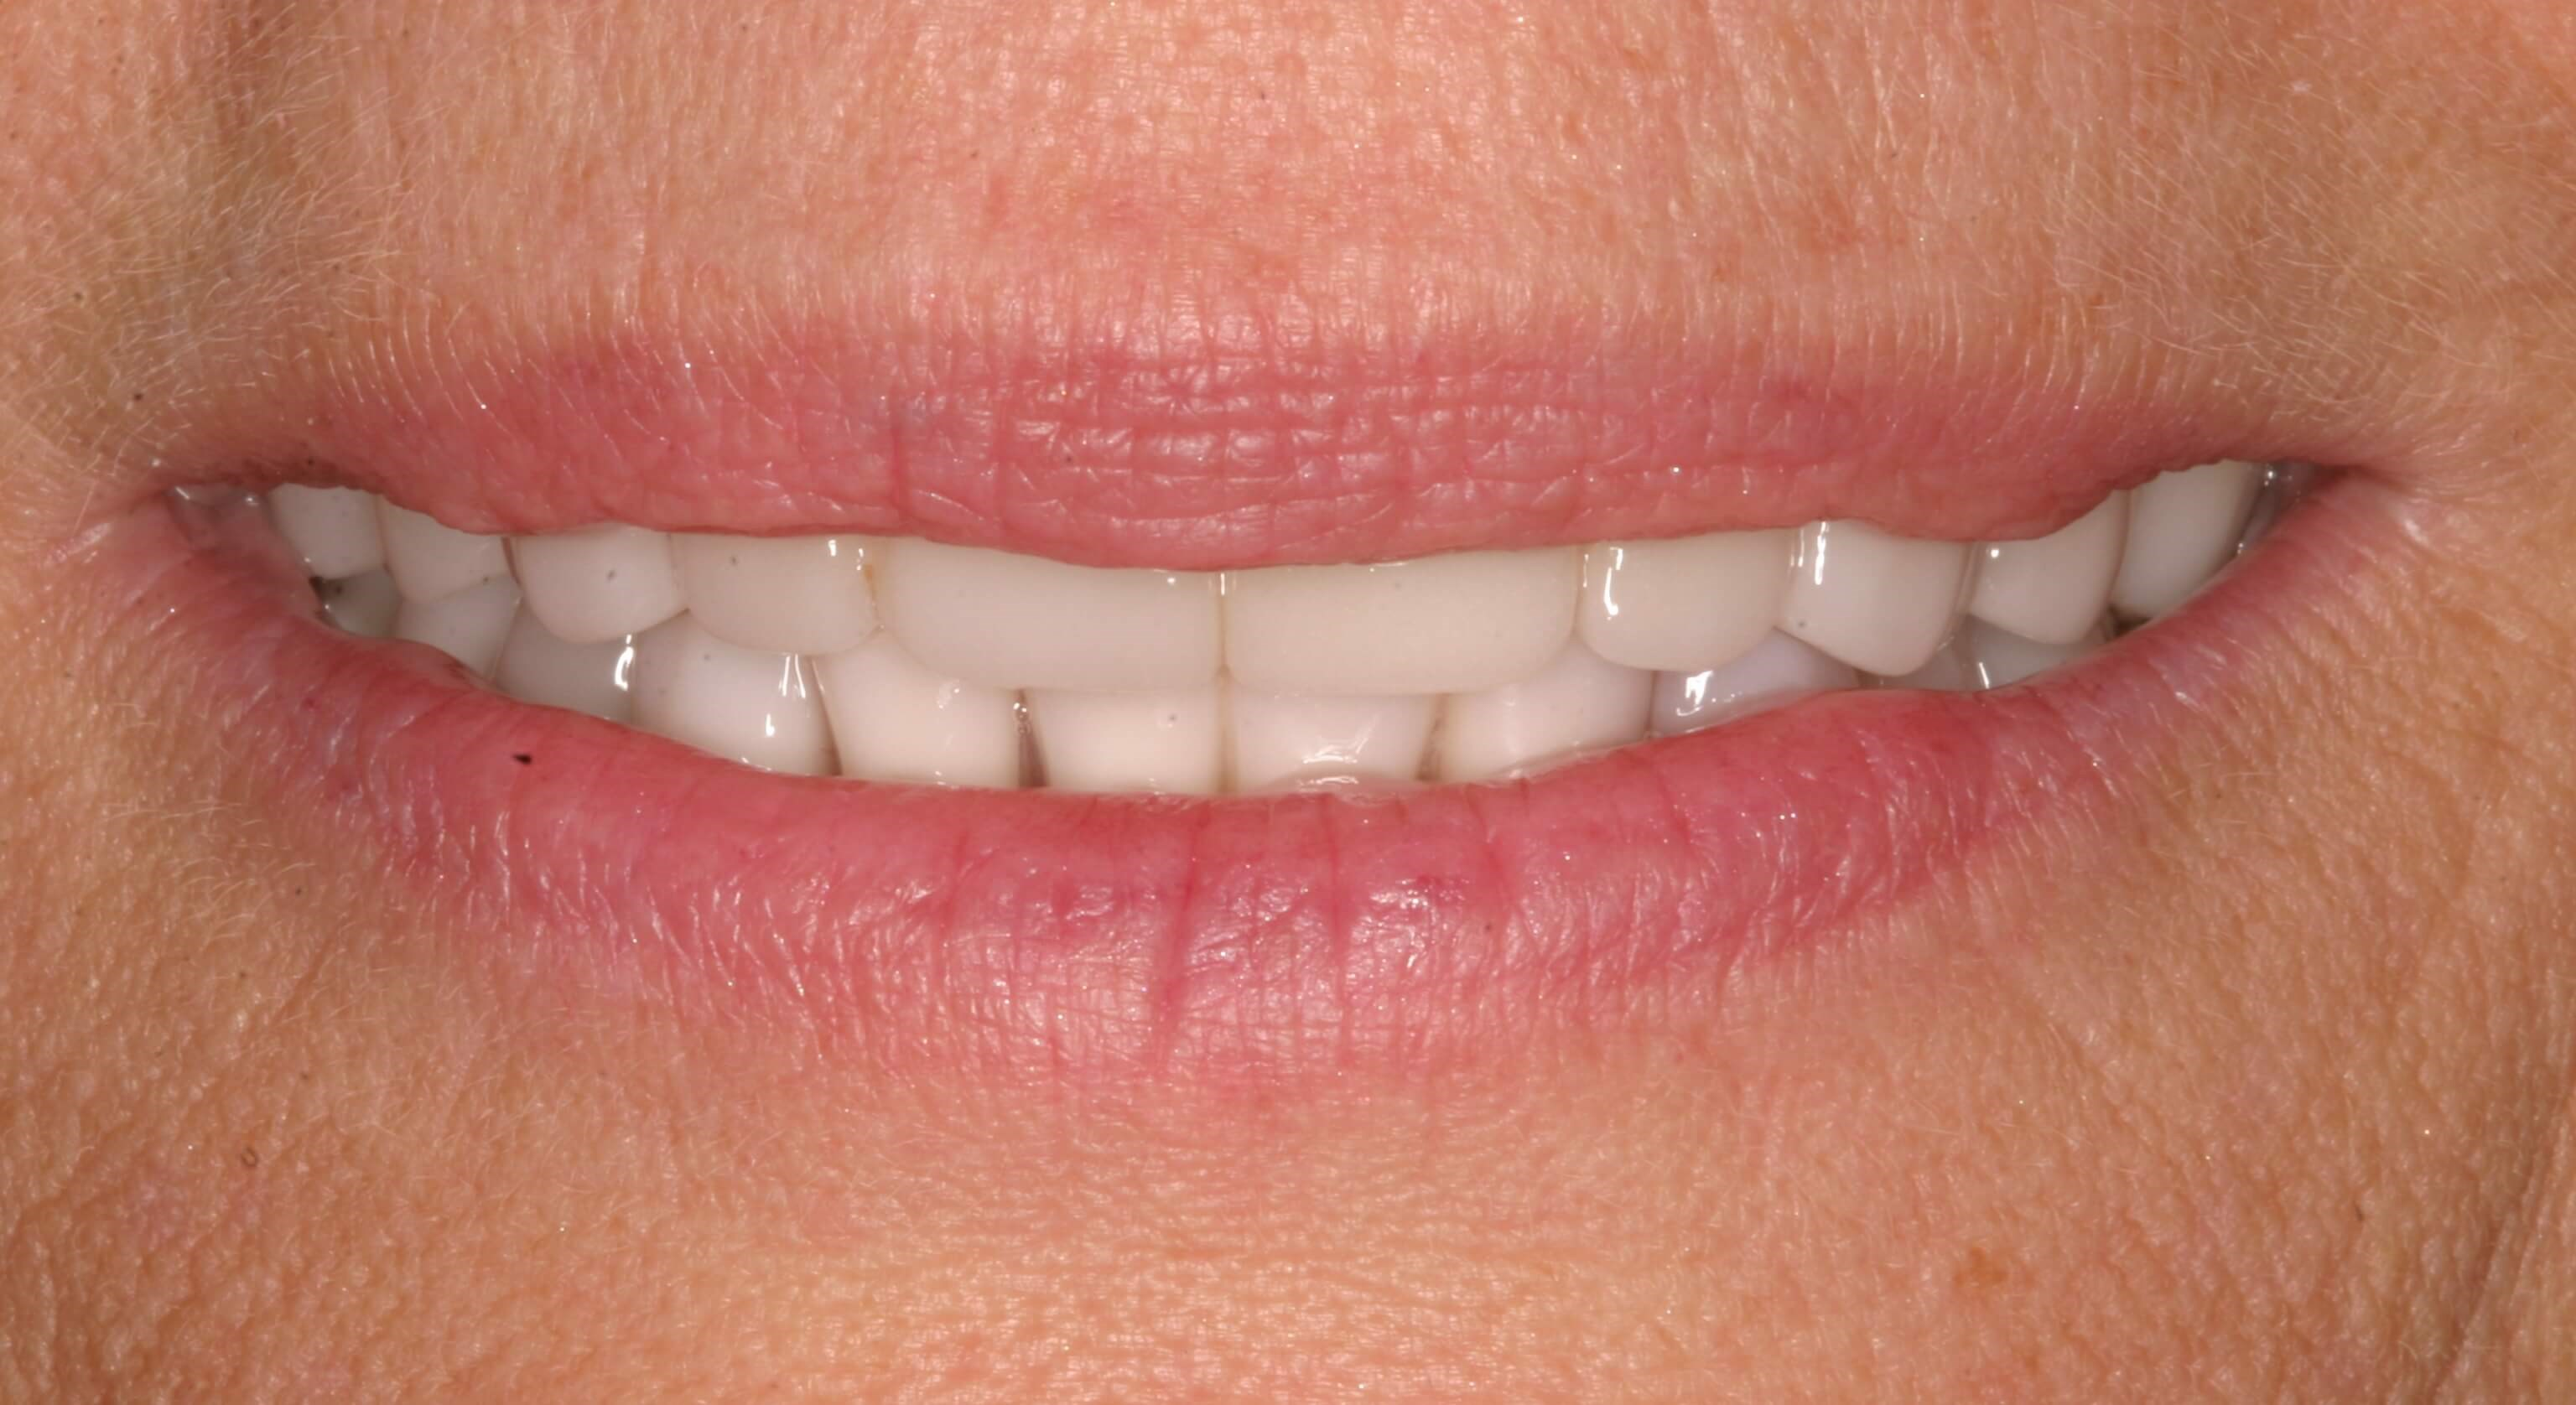 New Filled-Out Smile! After